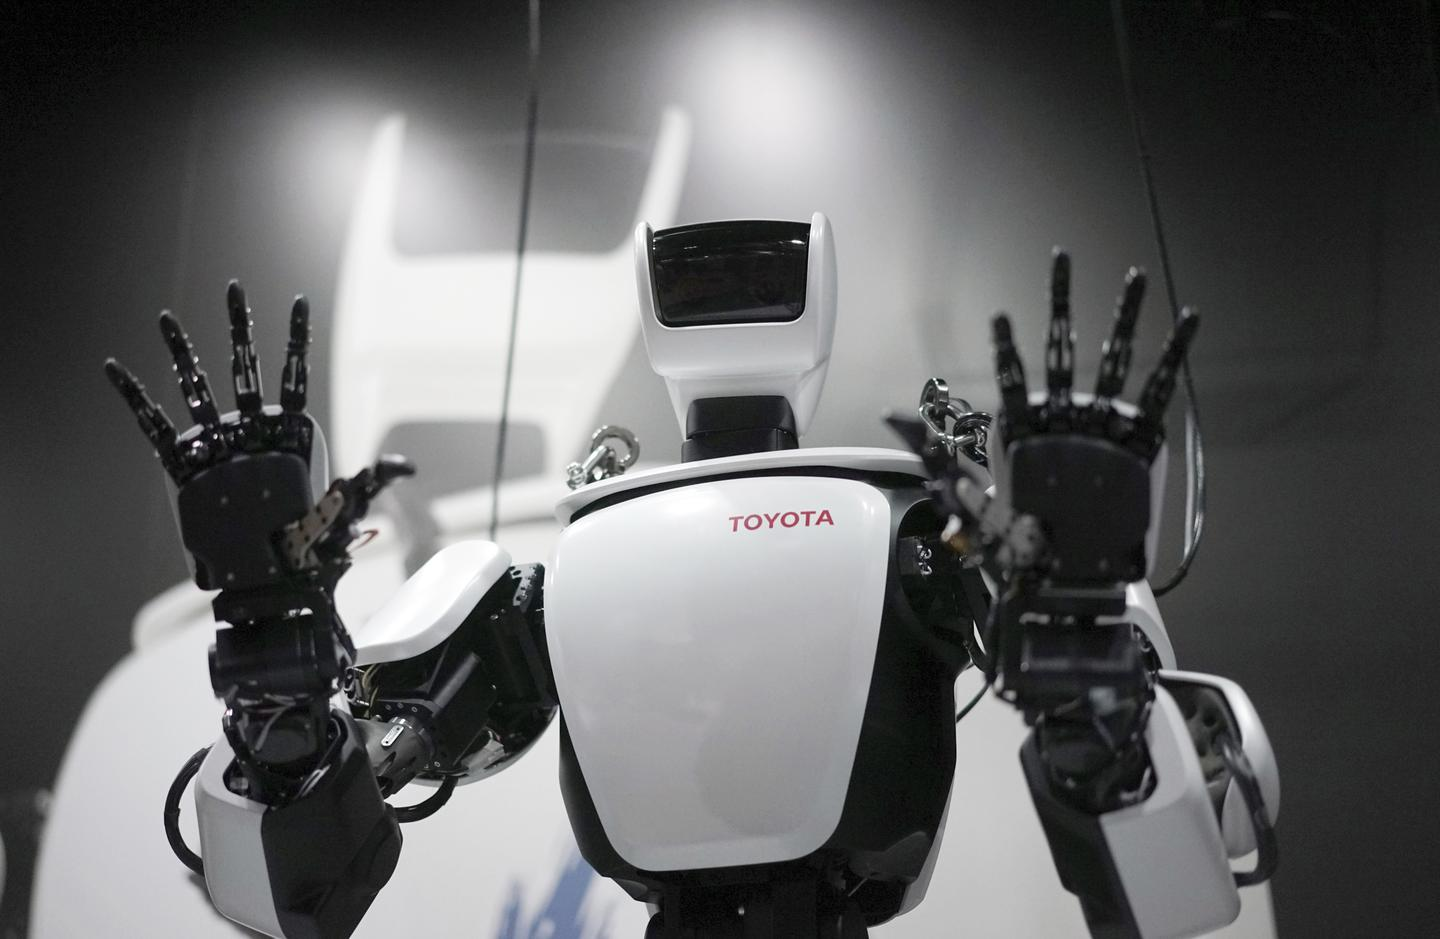 Despite All Their 'Cheap' Labor, the Chinese Embrace Robots Too